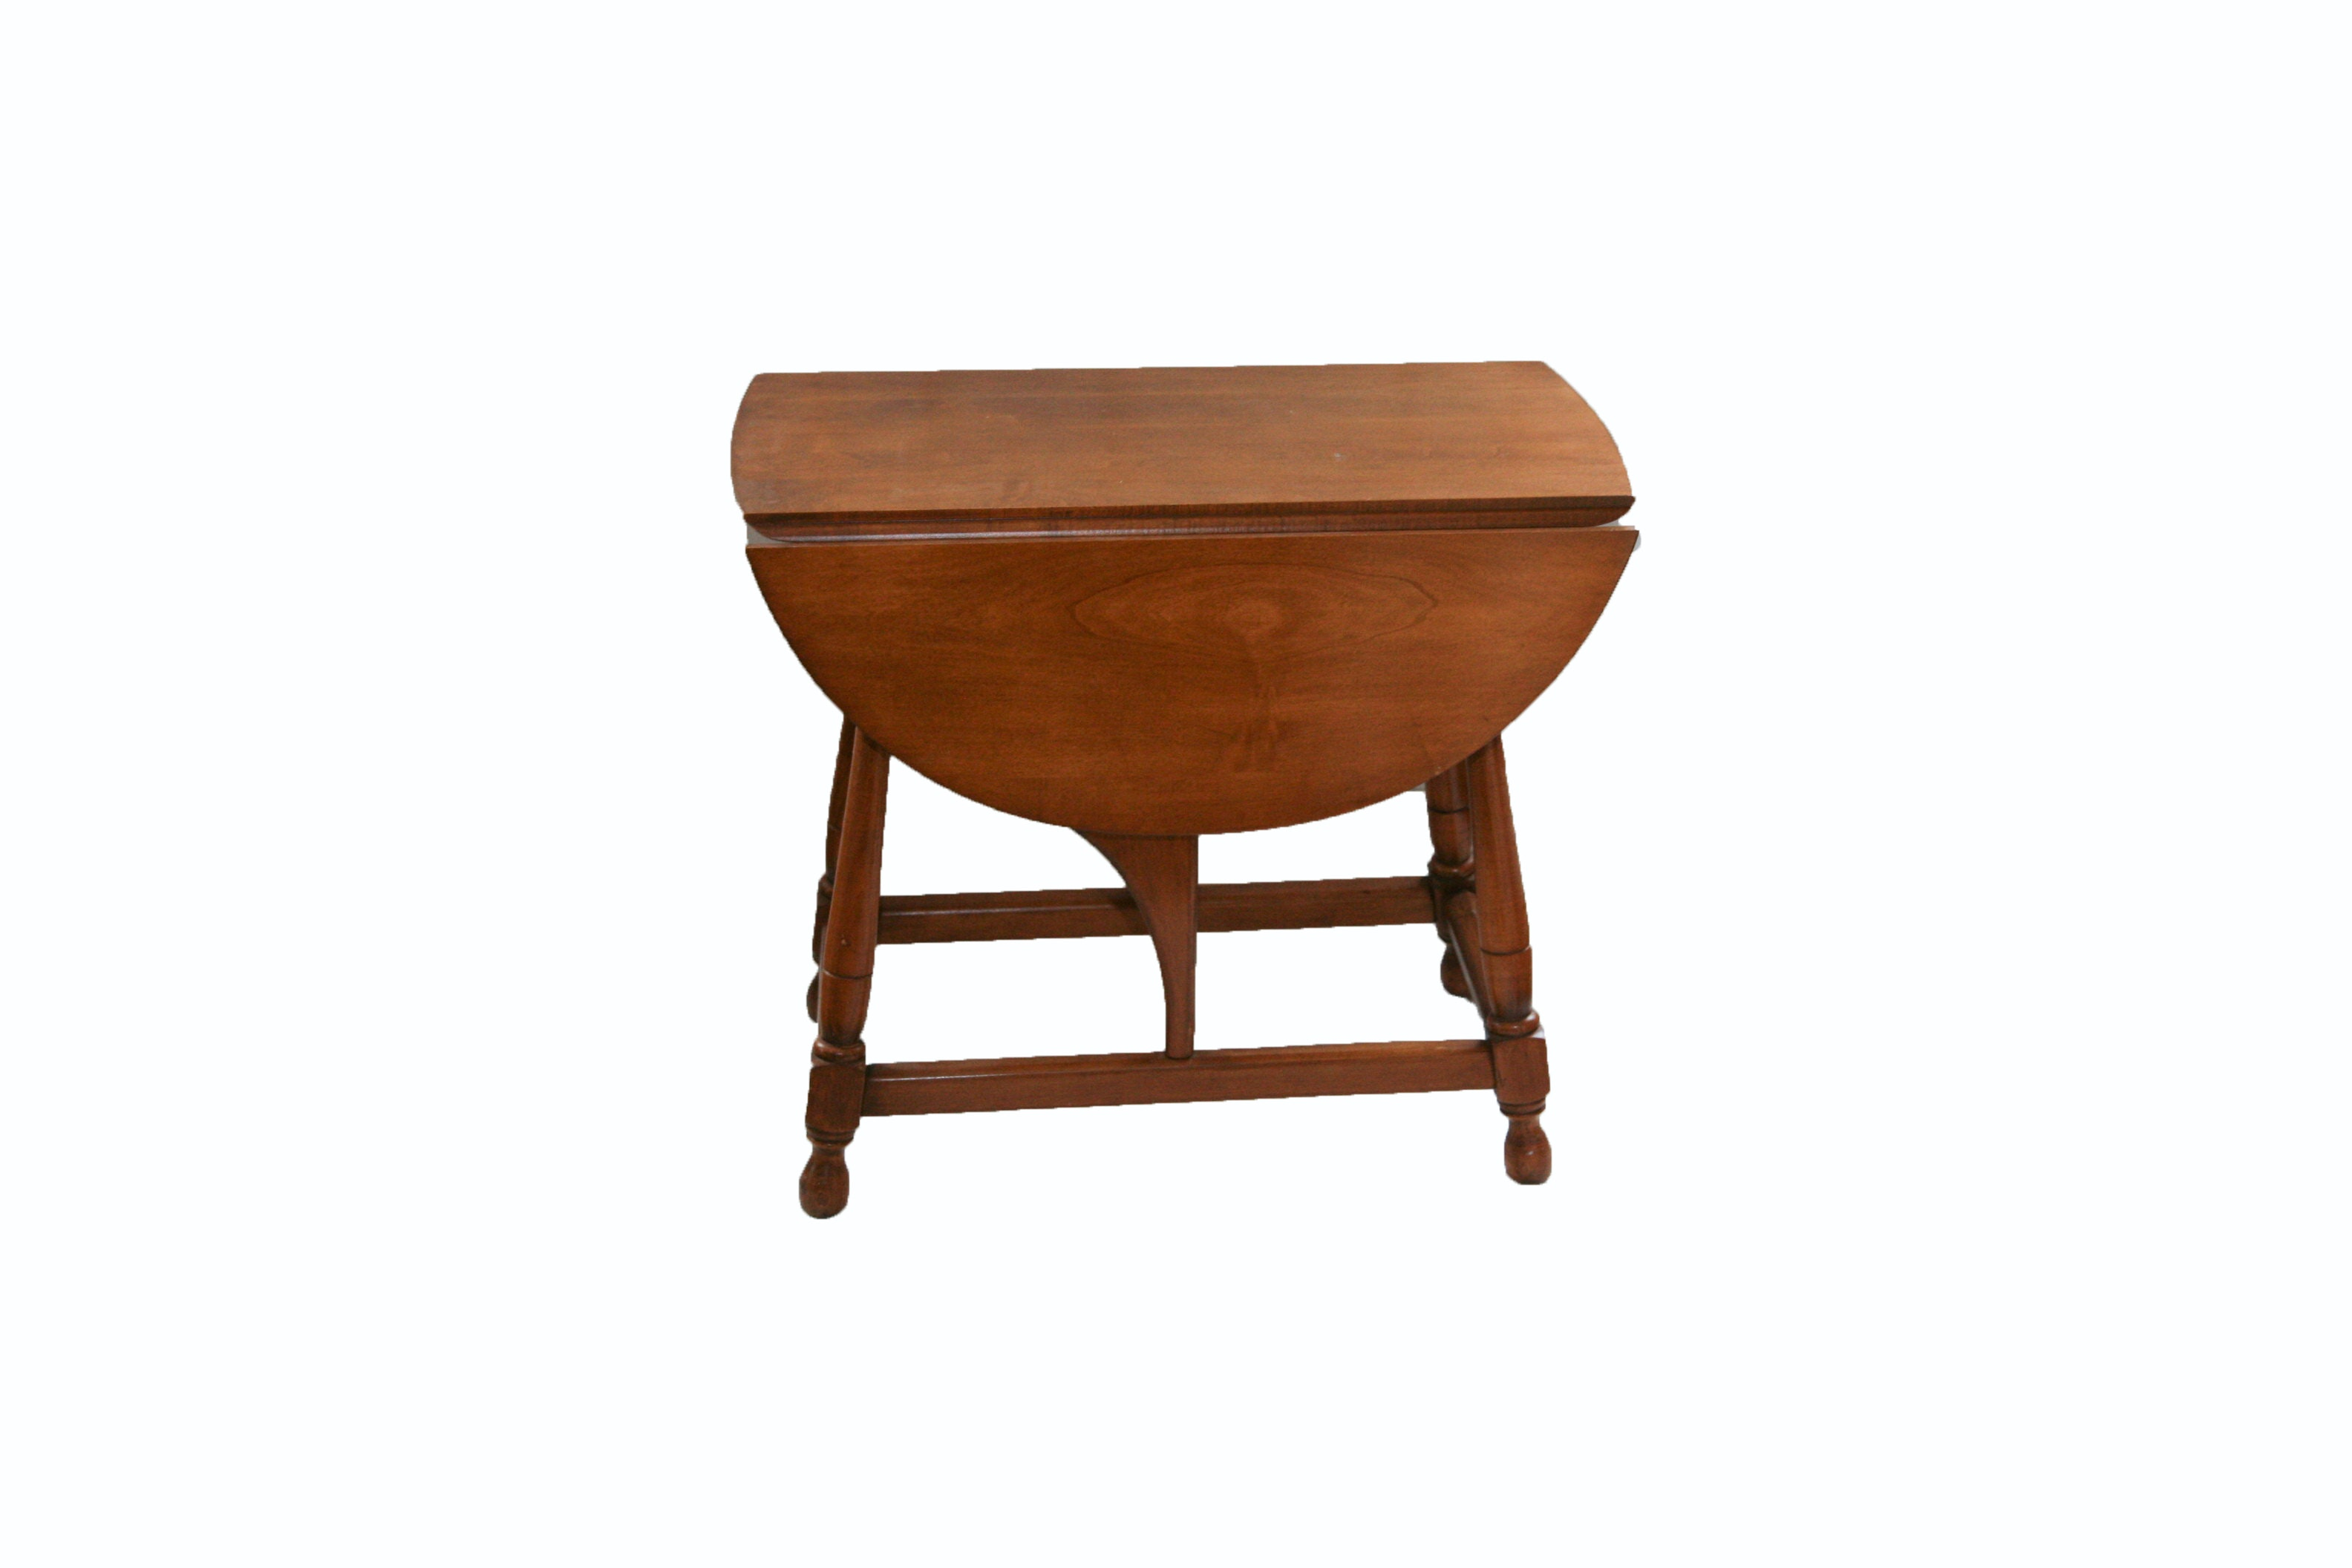 Sheraton Style Drop Leaf Cherry Table